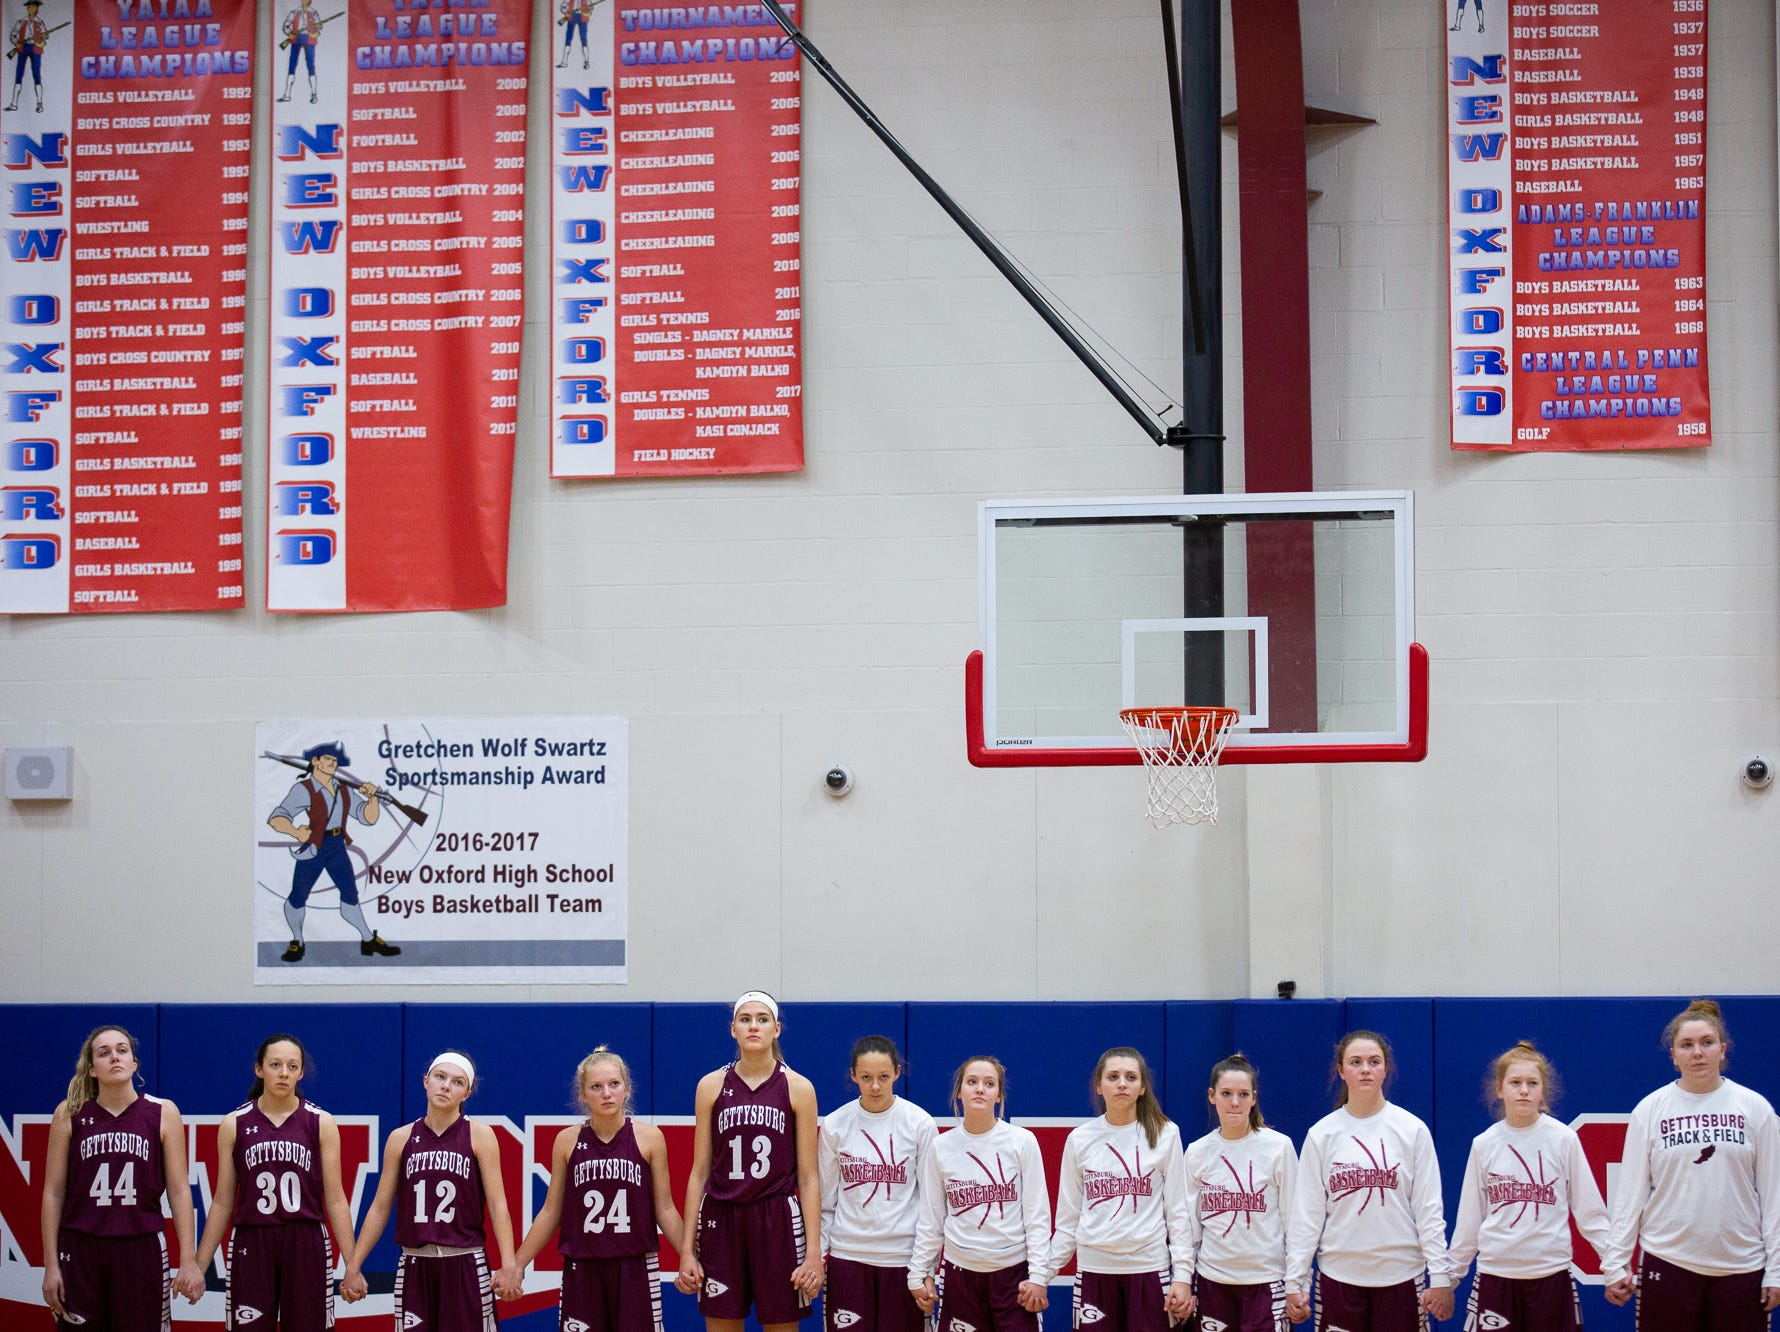 The Gettysburg Lady Warriors stand for the National Anthem during the championship game between New Oxford and Gettysburg at the New Oxford Girls Basketball Tip-Off Tournament, Saturday, Dec. 8, 2018, in New Oxford. The Gettysburg Lady Warriors defeated the New Oxford Lady Colonials 47-40.